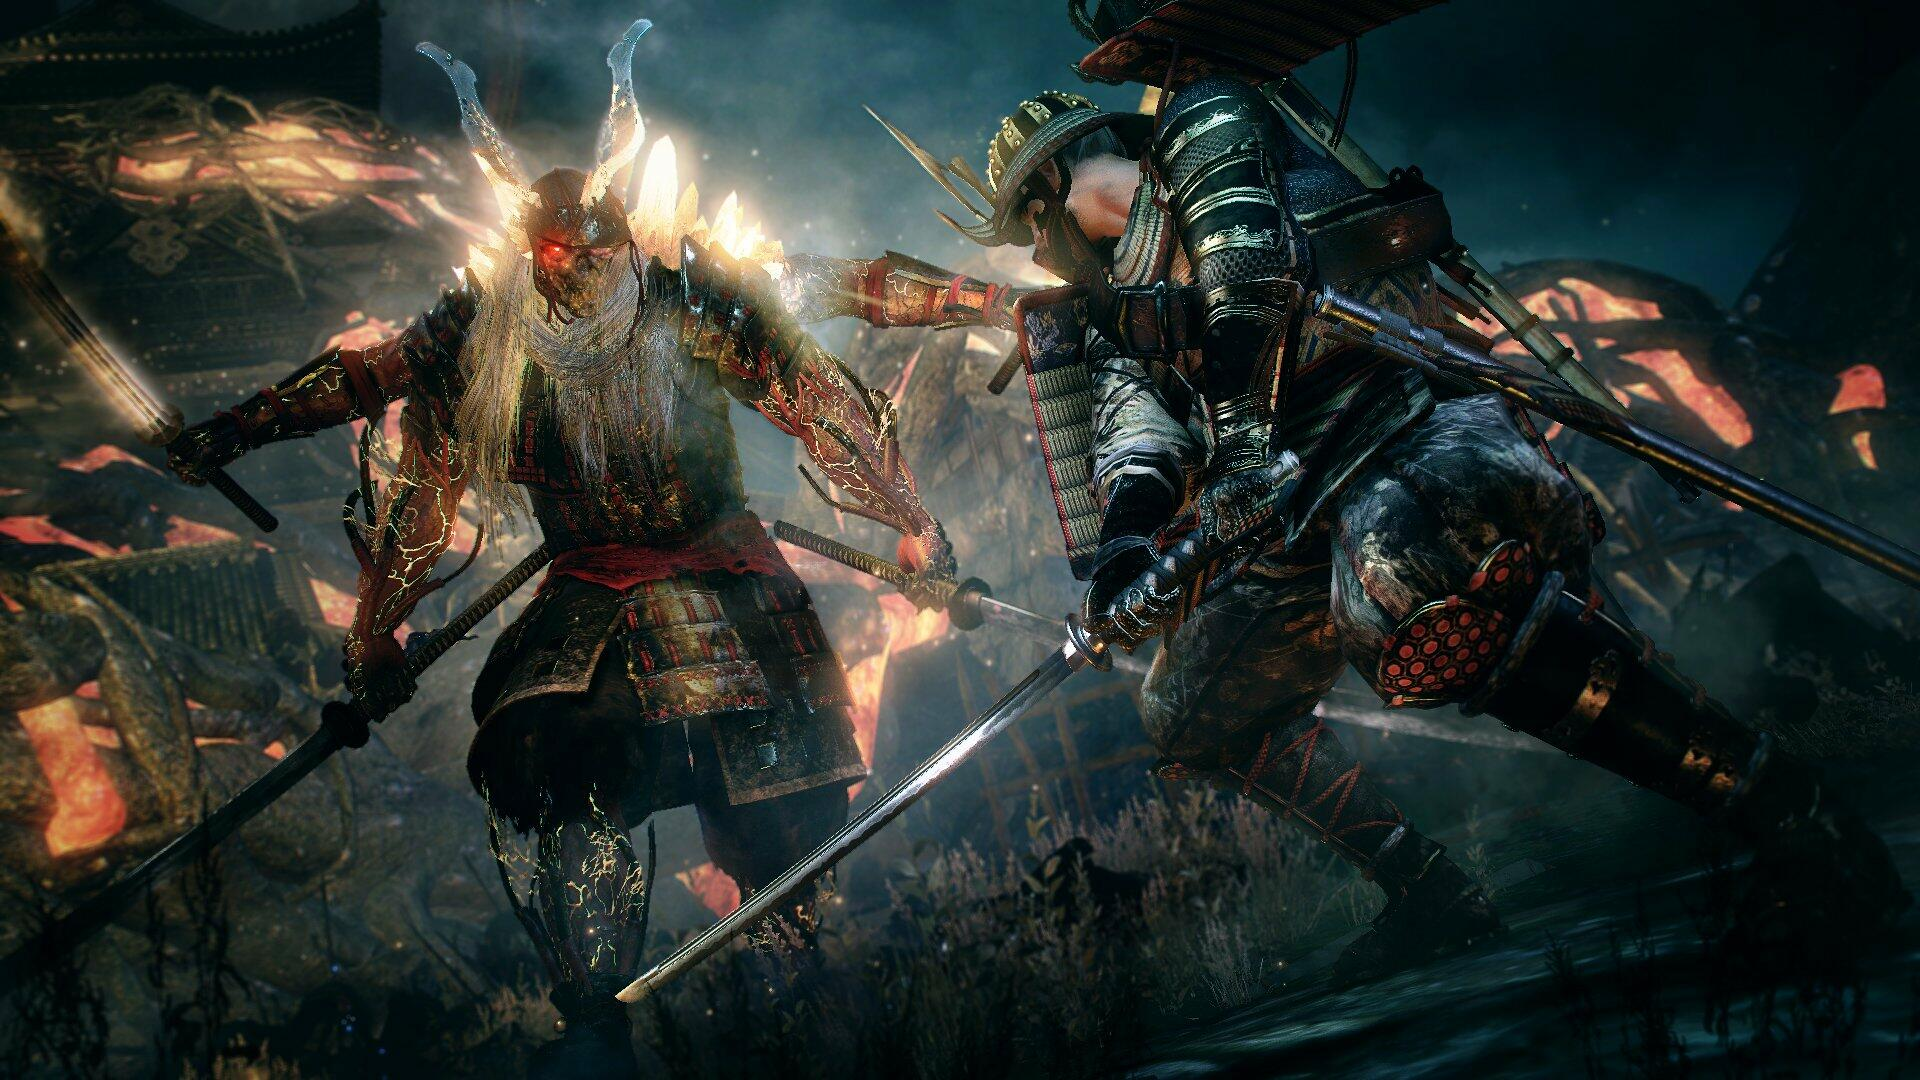 First Gameplay For Nioh 2 Shown In Trailer For Closed Alpha | USgamer